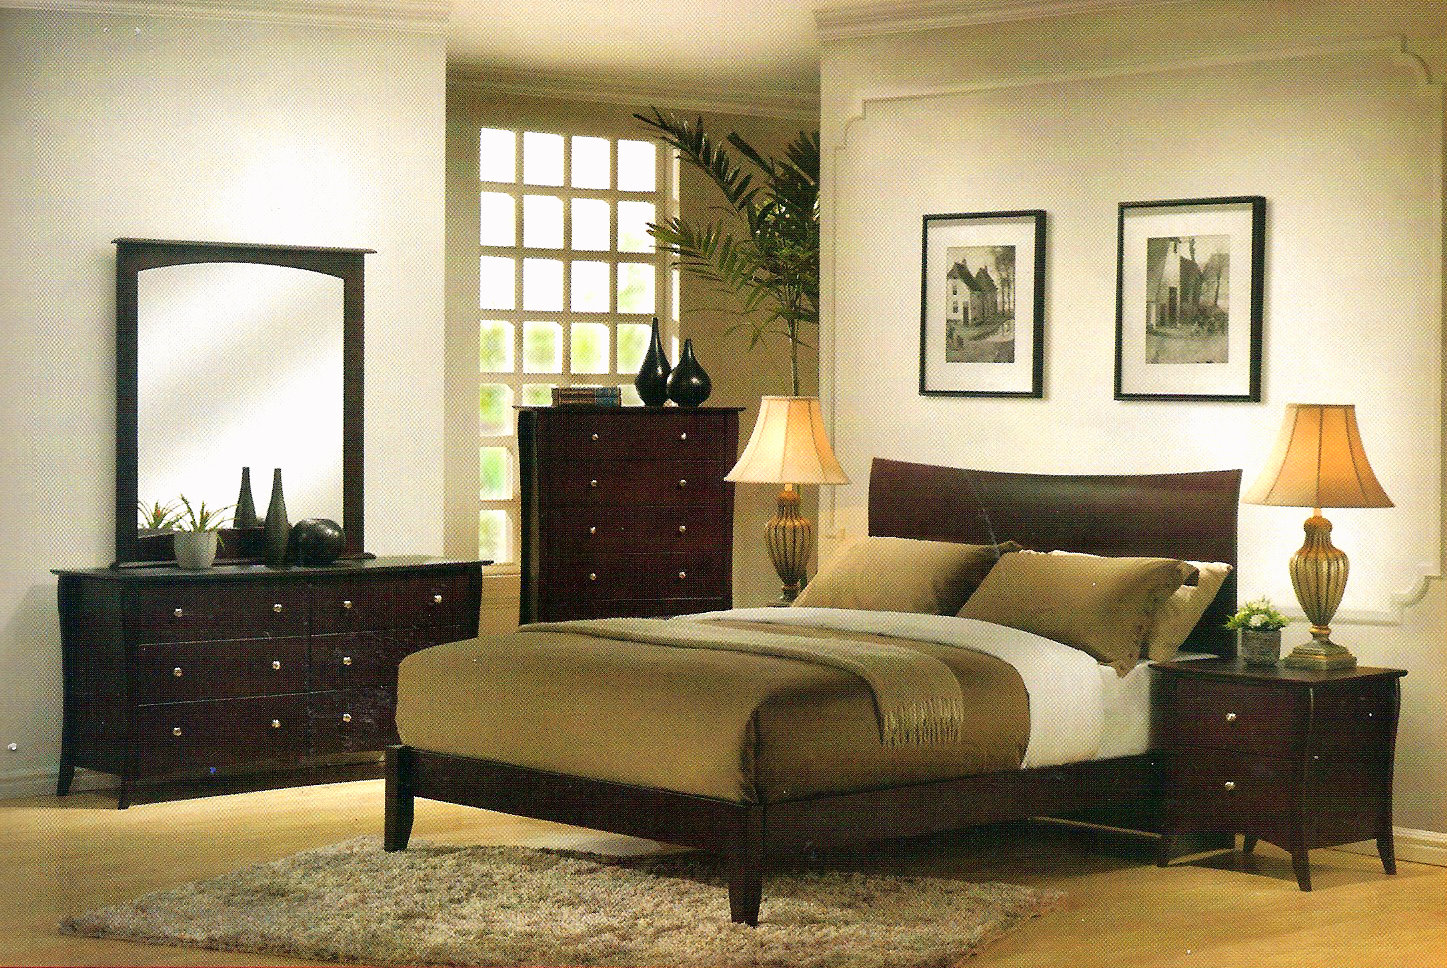 Amazing Wood King Bed Frame 1447 x 968 · 578 kB · jpeg